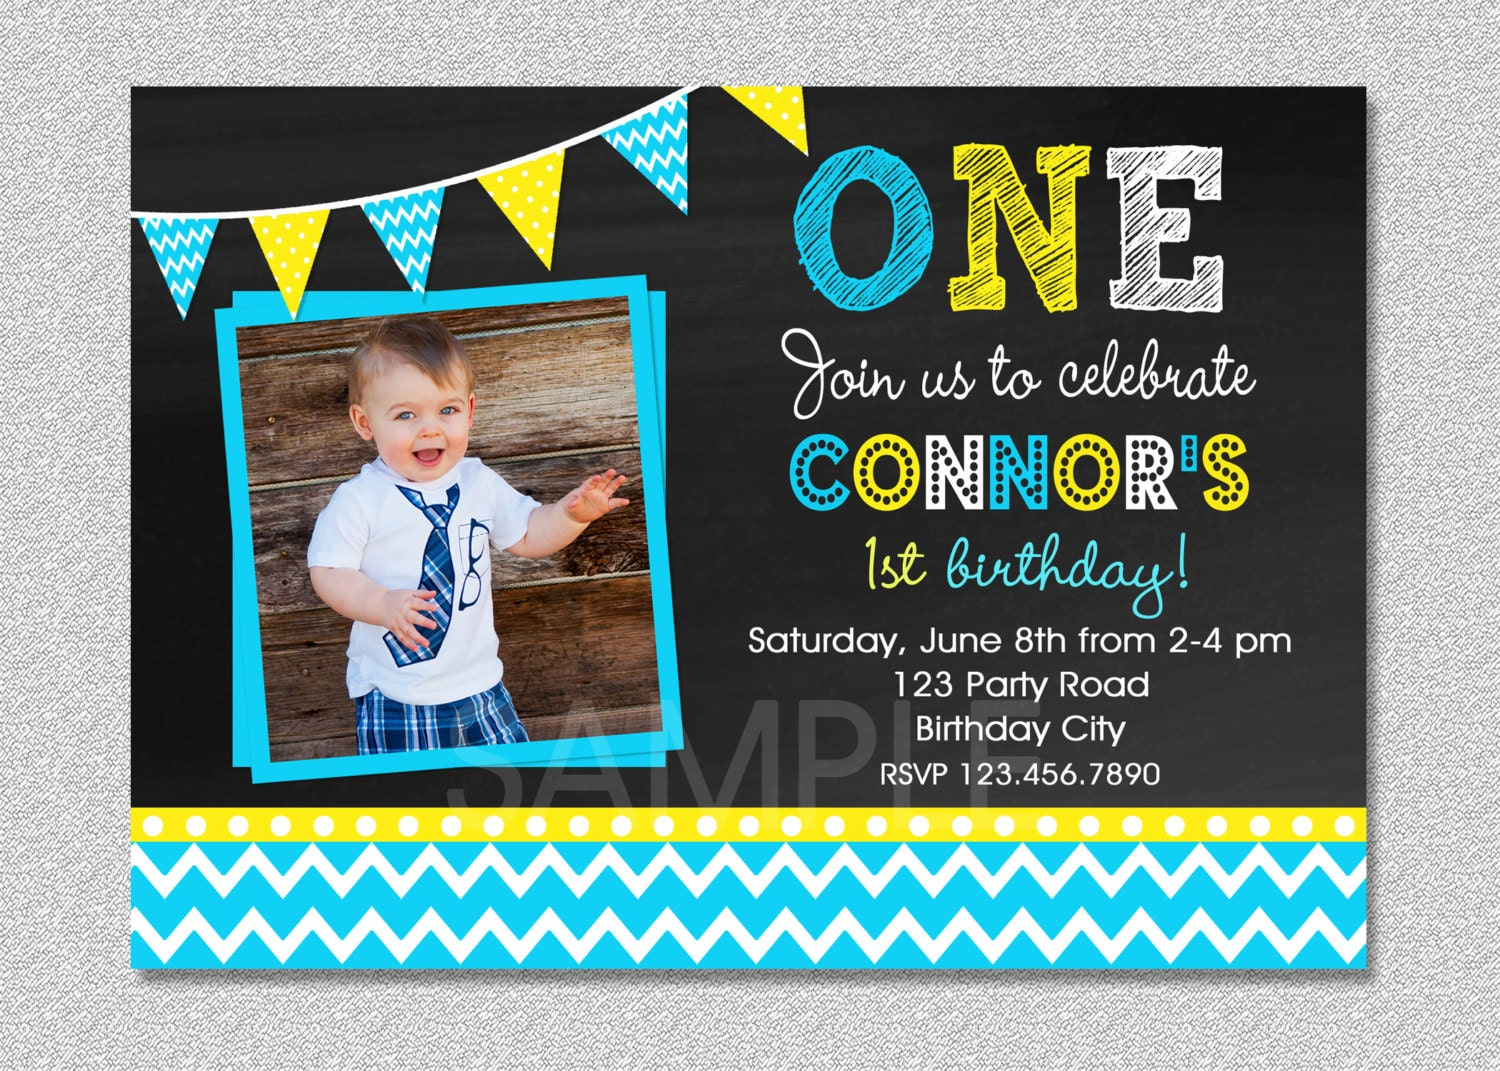 Boys birthday invites pertamini boys birthday invites filmwisefo Images